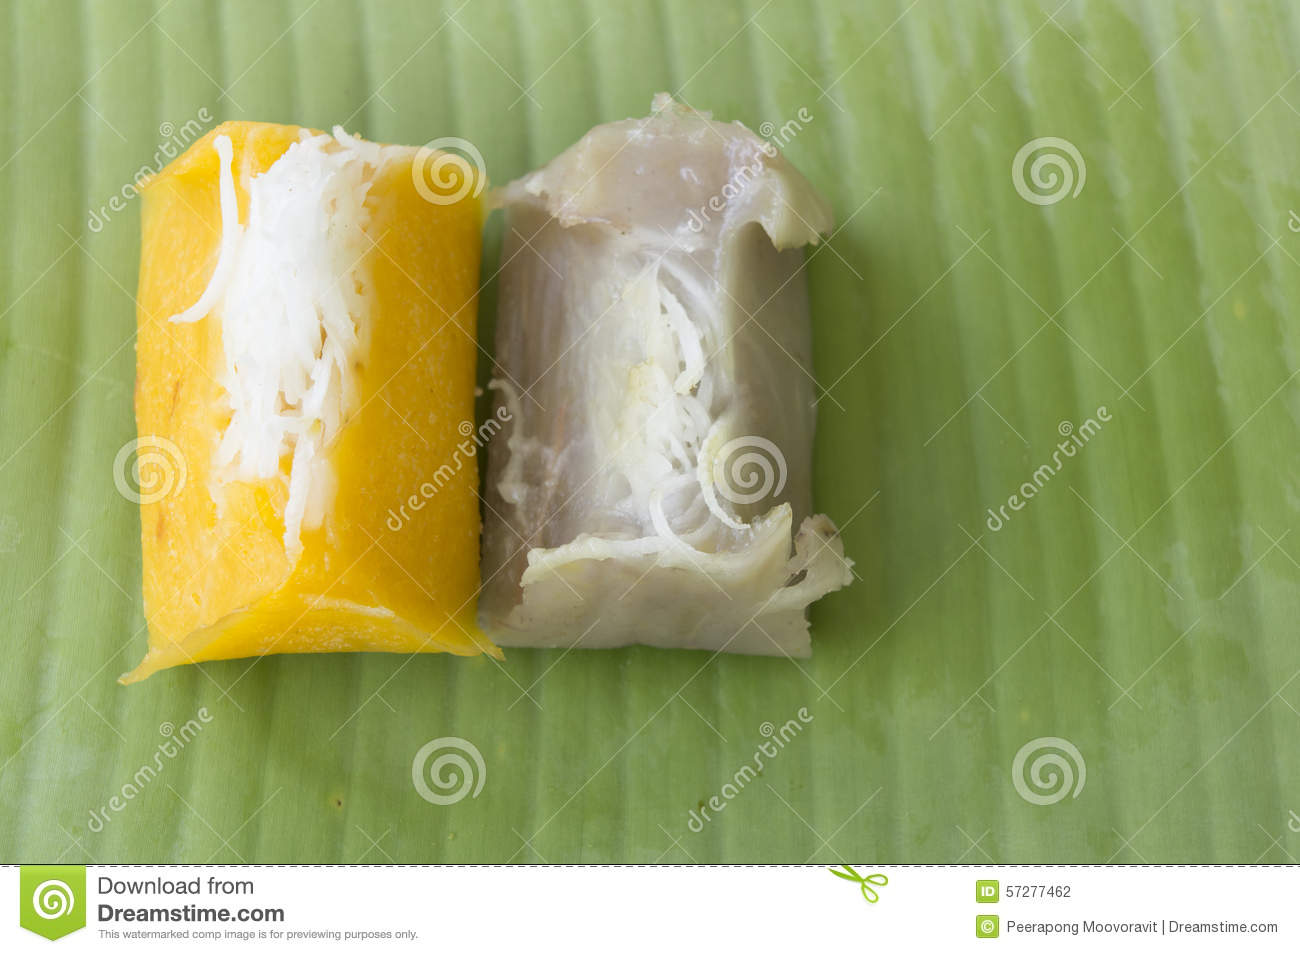 concepts about banana Banana news, articles and information: home about naturalnews contact us write for naturalnews media info advertise concepts related to banana.